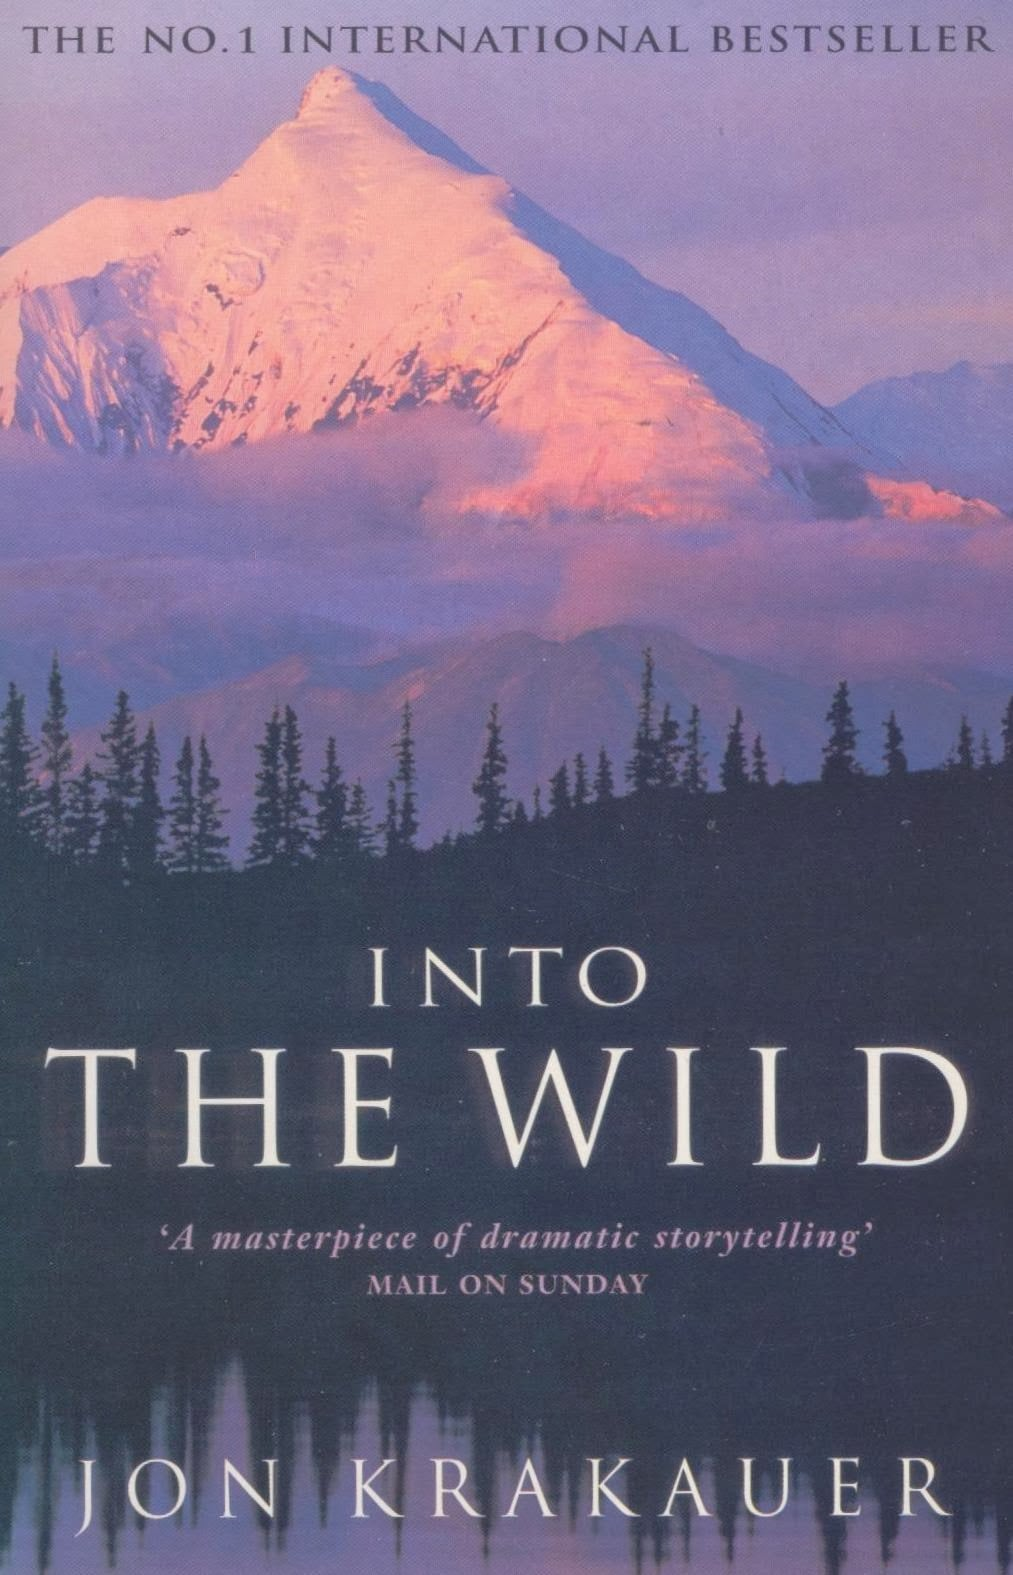 jon krakauers into the wild essay Into the wild is a 1996 non-fiction book written by jon krakauer it is an expansion of a 9,000-word article by krakauer on christopher mccandless titled death of an.